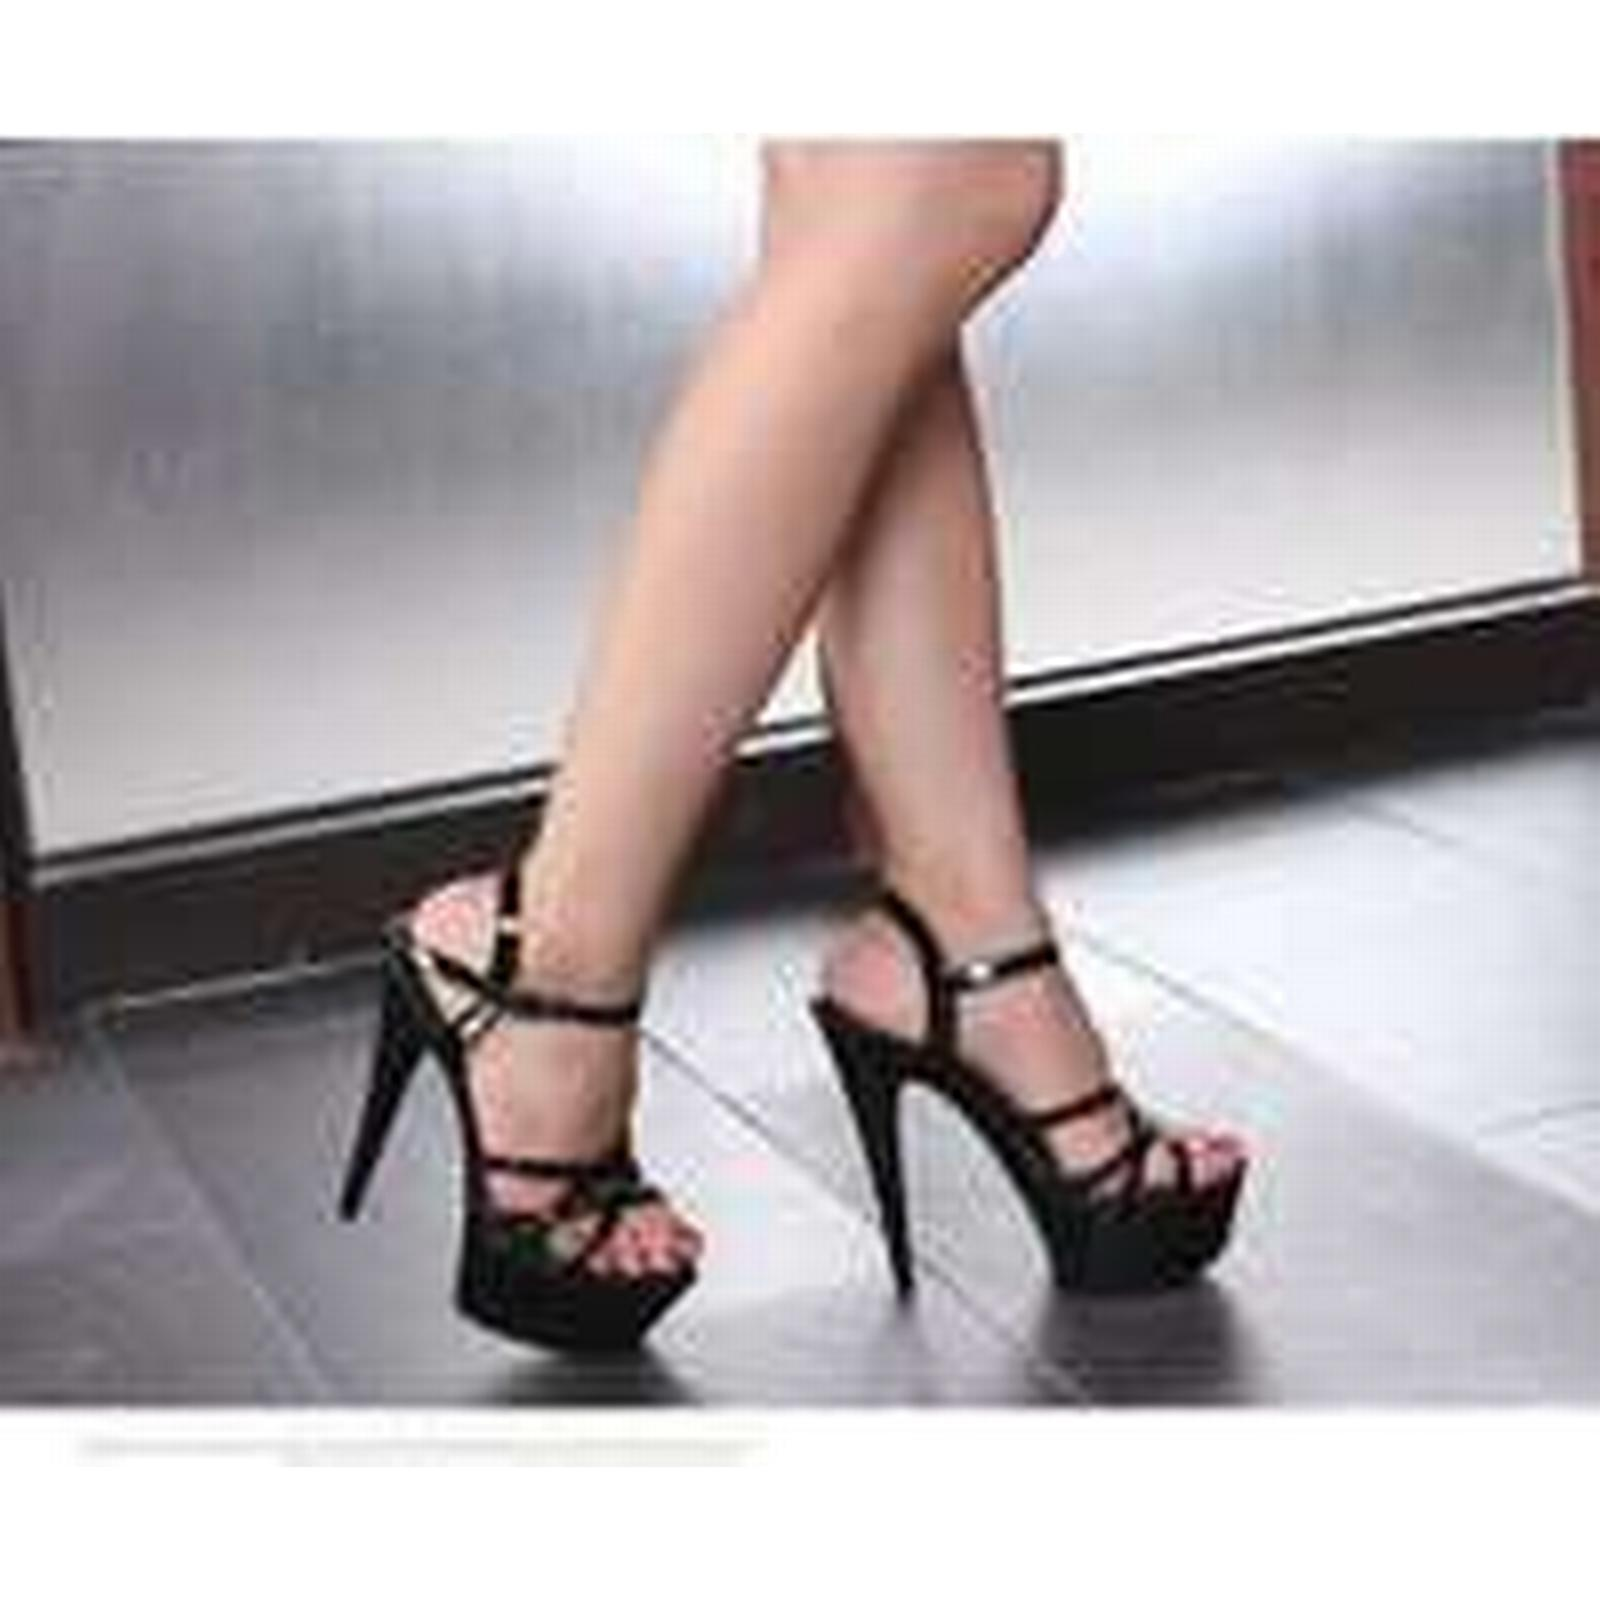 Bonanza (Global) ps360 awesome 15 cm strappy 4-9.5 sandals, patent leather,US Size 4-9.5 strappy black ecb319